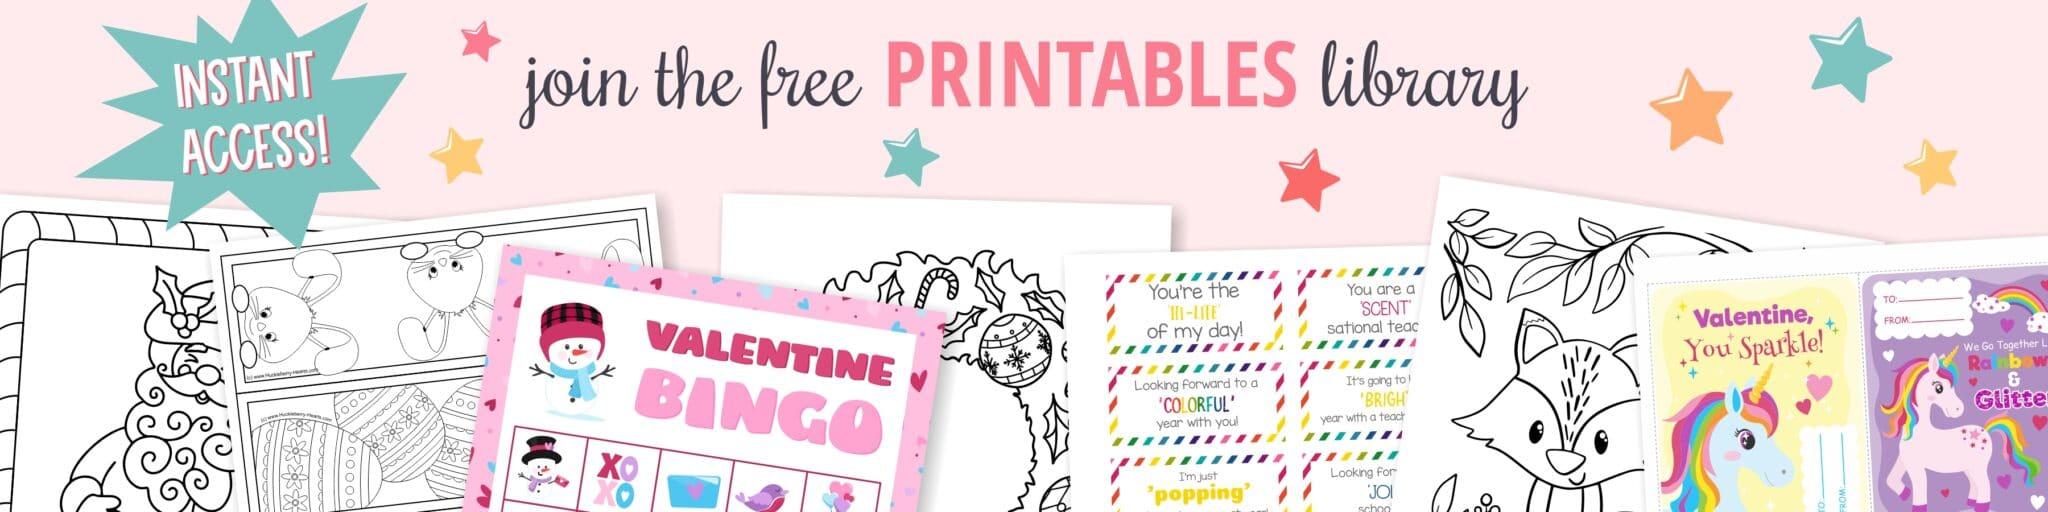 Free Printables Library for Members